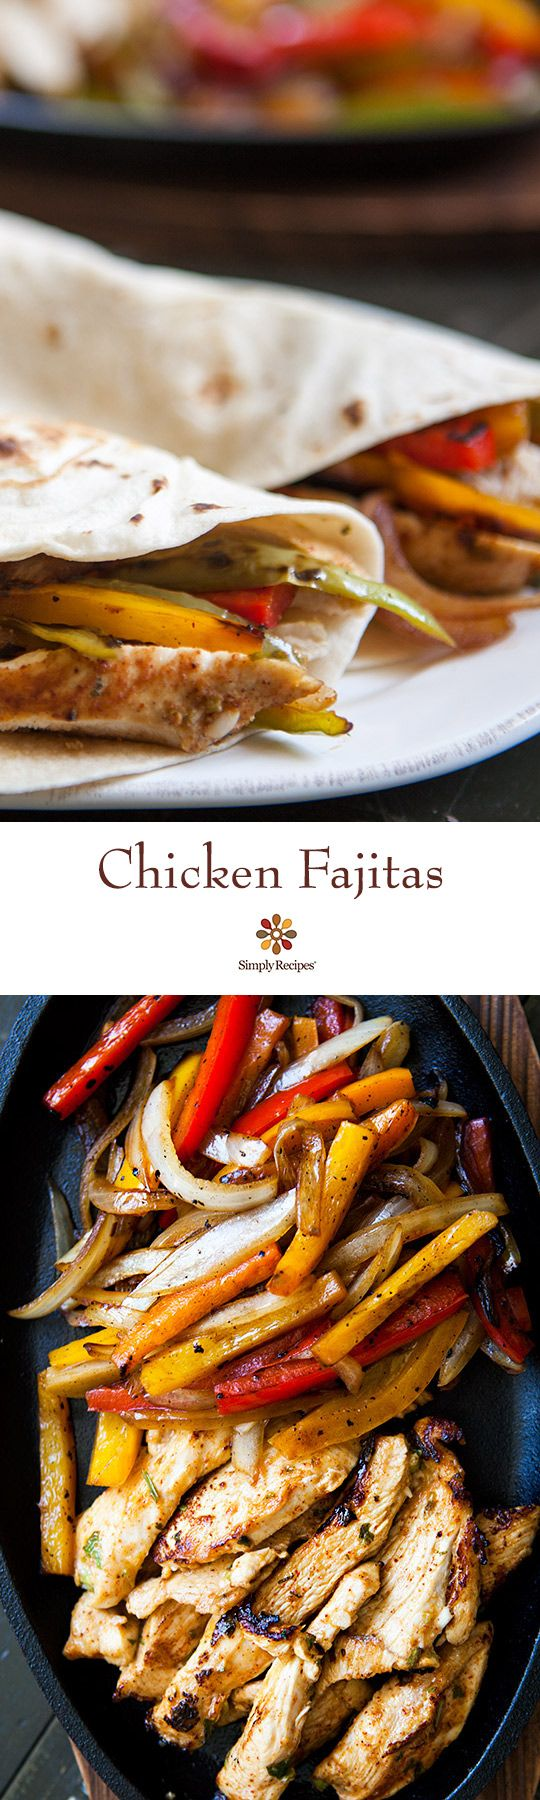 (Mexico) The BEST chicken fajitas! Marinated chicken breasts seared quickly and served with seared onions and bell peppers, and flour tortillas. On SimplyRecipes.com